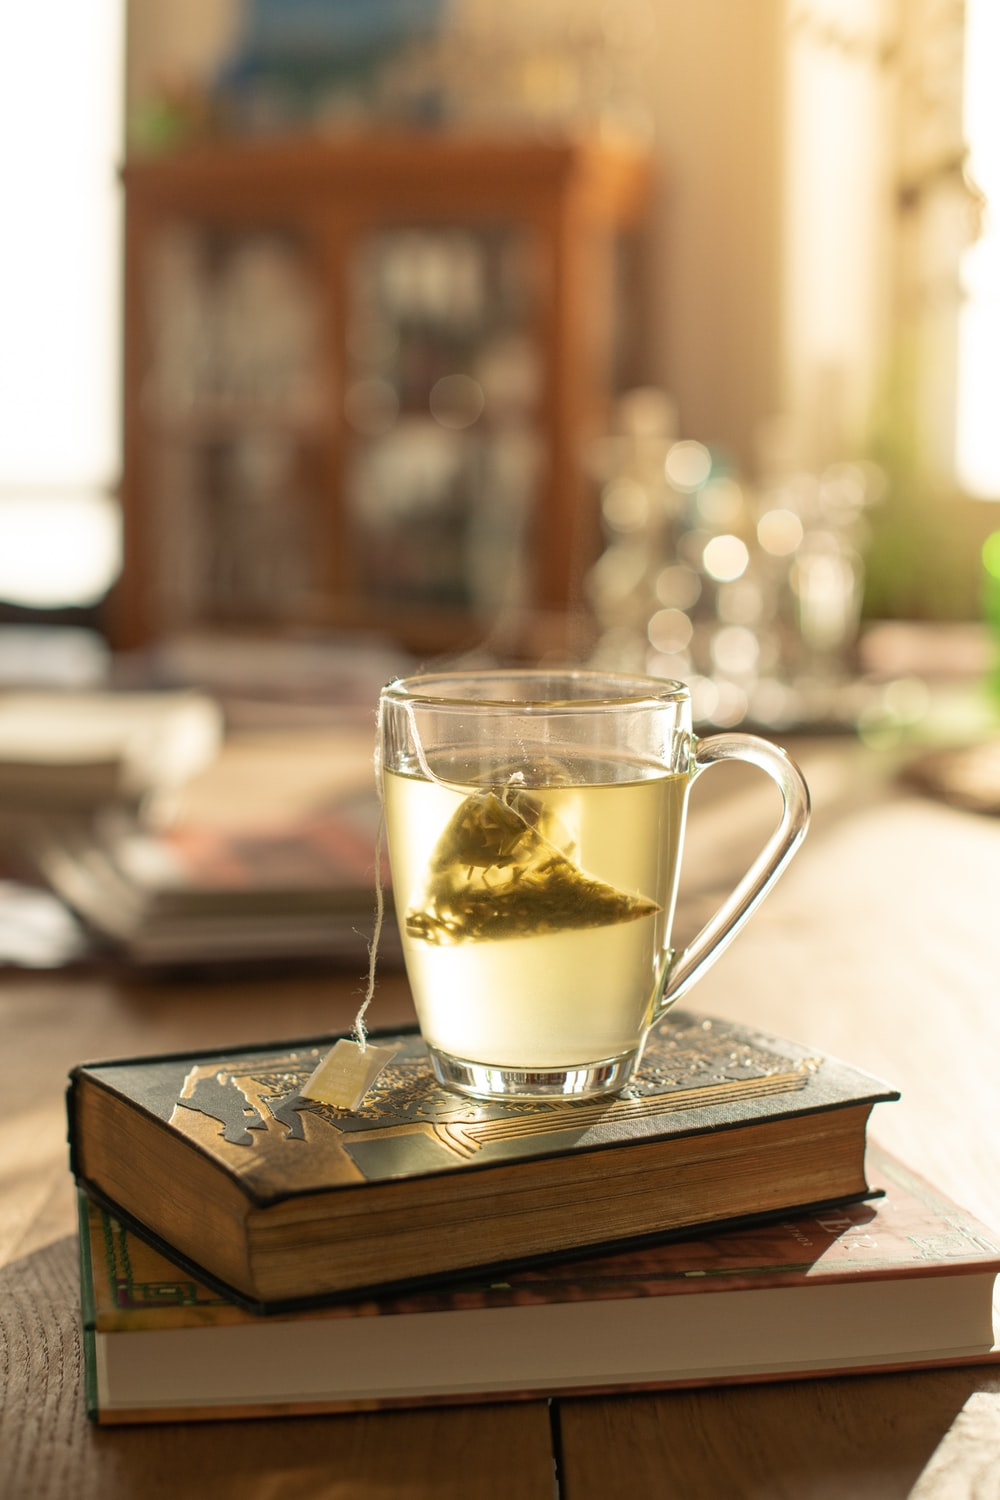 clear glass mug on brown wooden tray